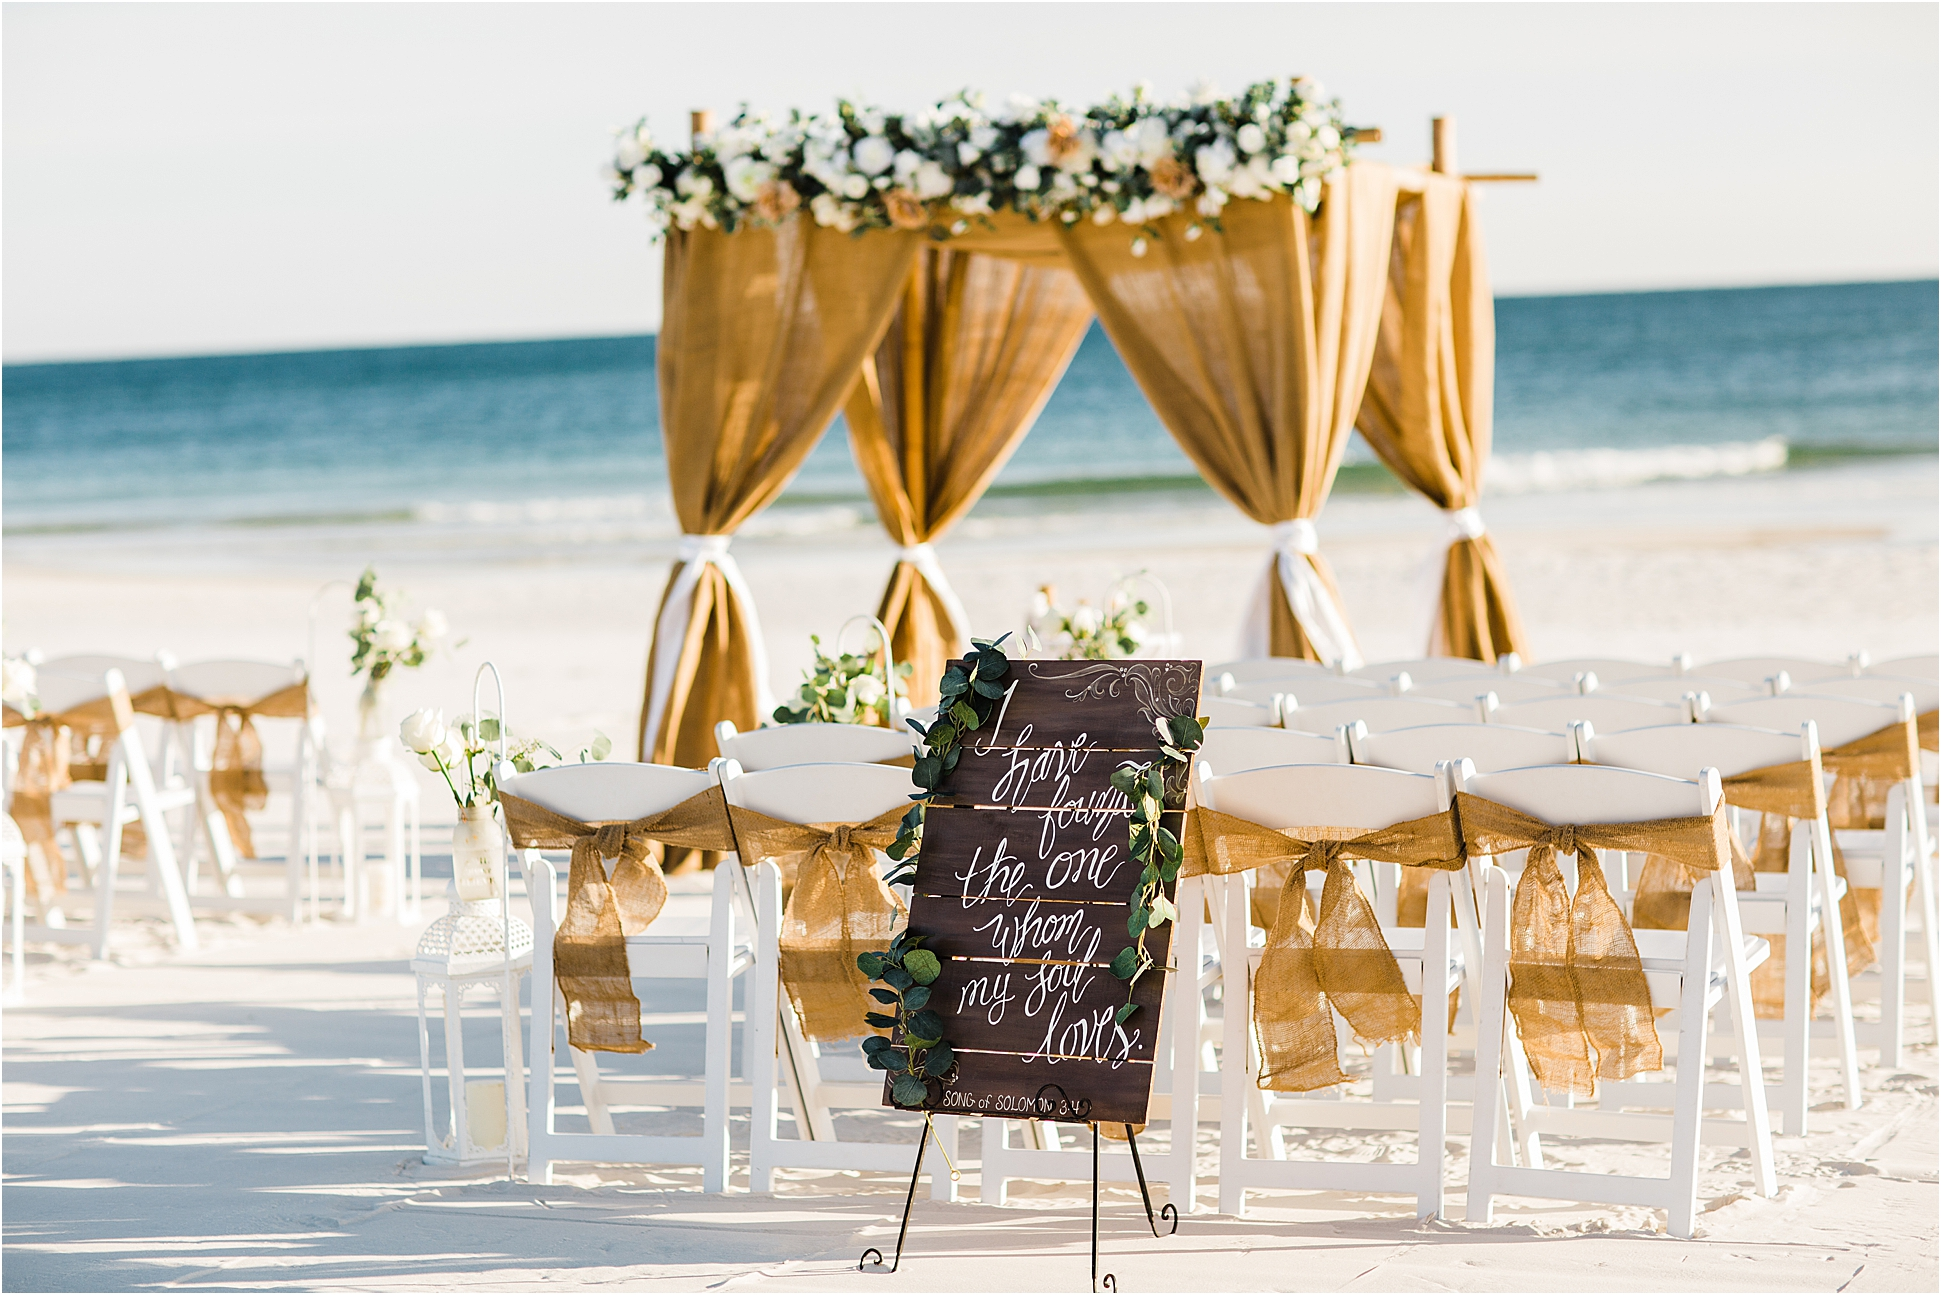 Wedding Arches for rent in Gulf Shores